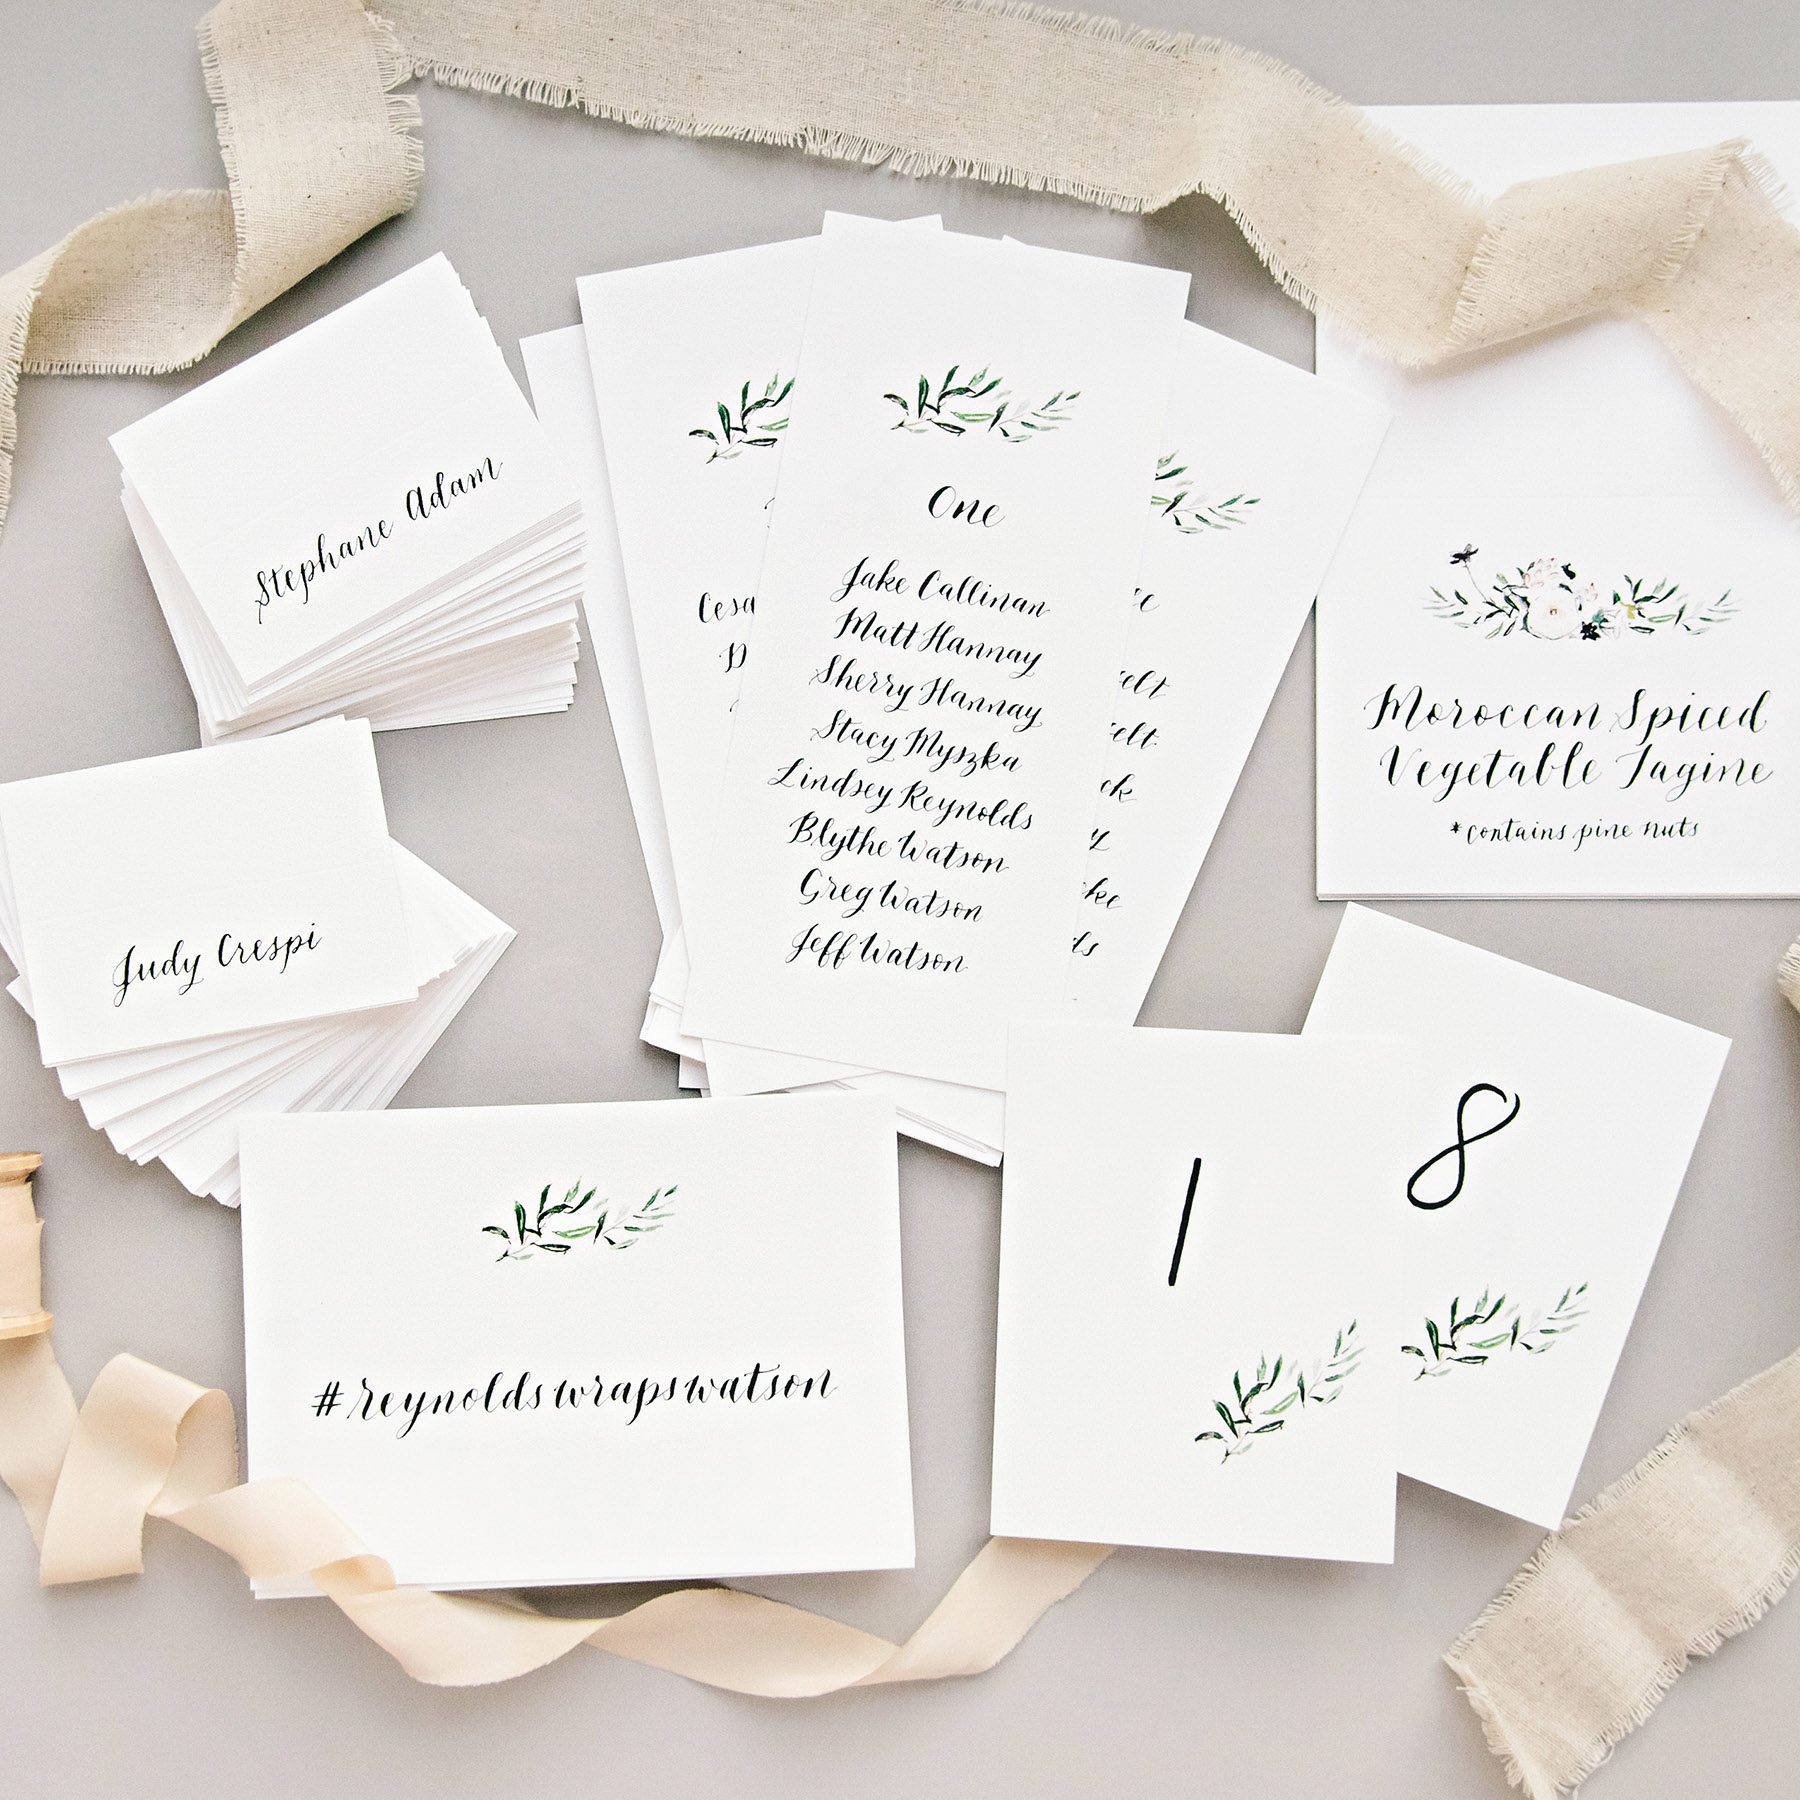 Wedding Seating Chart_Calligraphy_Table Numbers_Signage.jpg